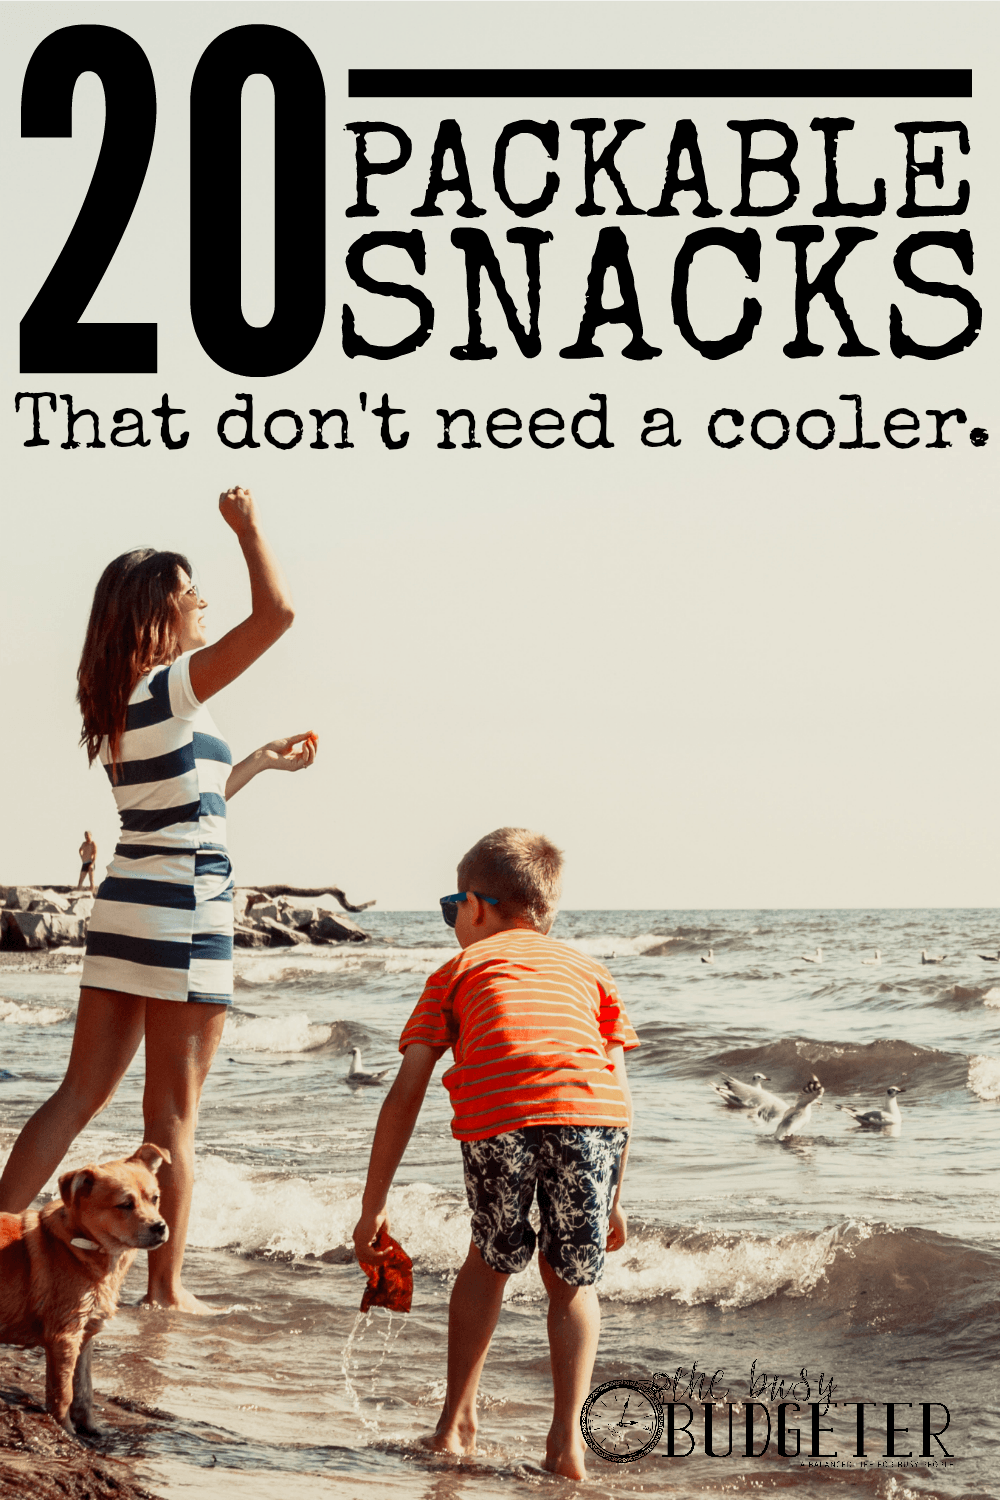 20 Packable Snacks that Don;t Need a Cooler. This is outstanding! I'm always looking for ideas to keep in the car. I spend a small fortune on eating out because I don;t have the time to eat ahead. Throw a few bags of these in the car and a case of water and boom. There is it. Snacks for everyone and I save a small fortune.